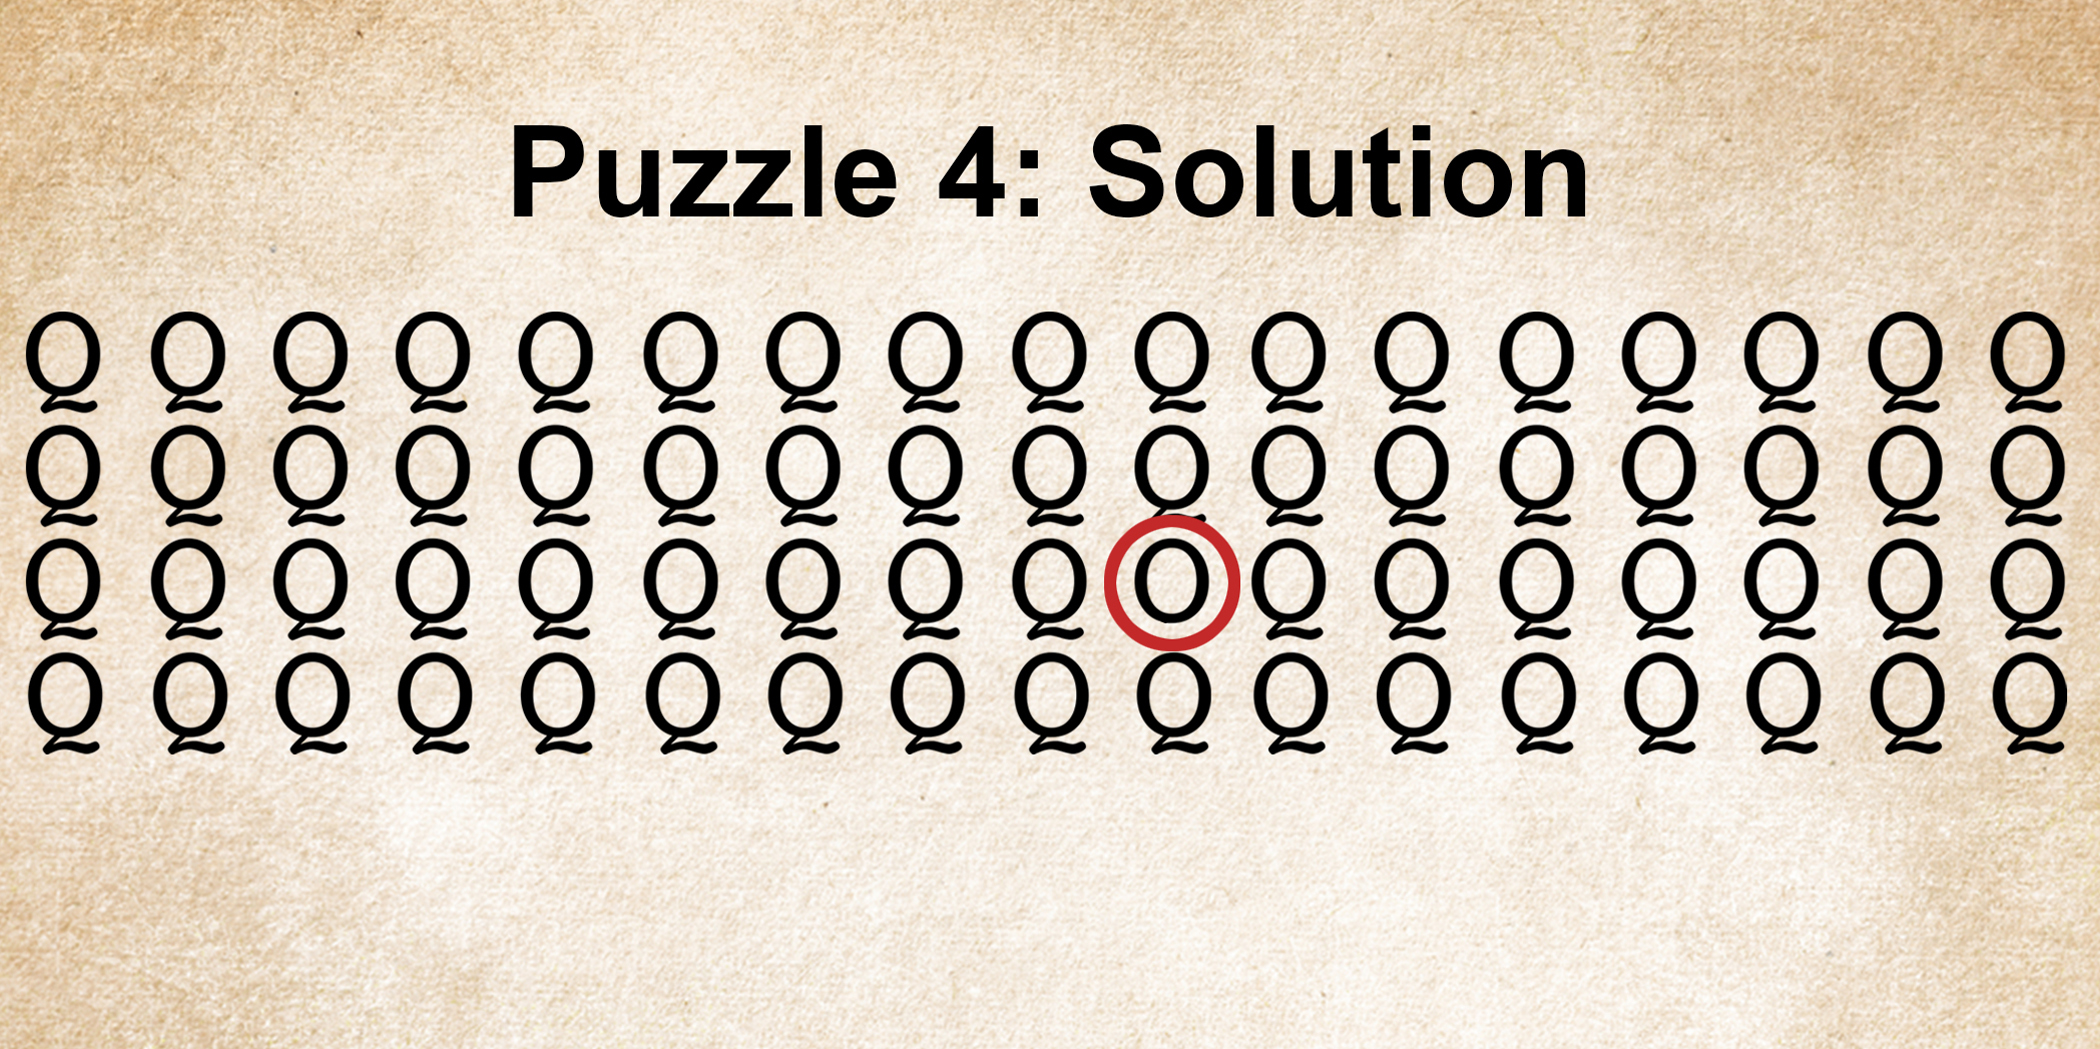 Beat the Timer and Test Your Vision: How Fast Can You Solve These Five Puzzles?